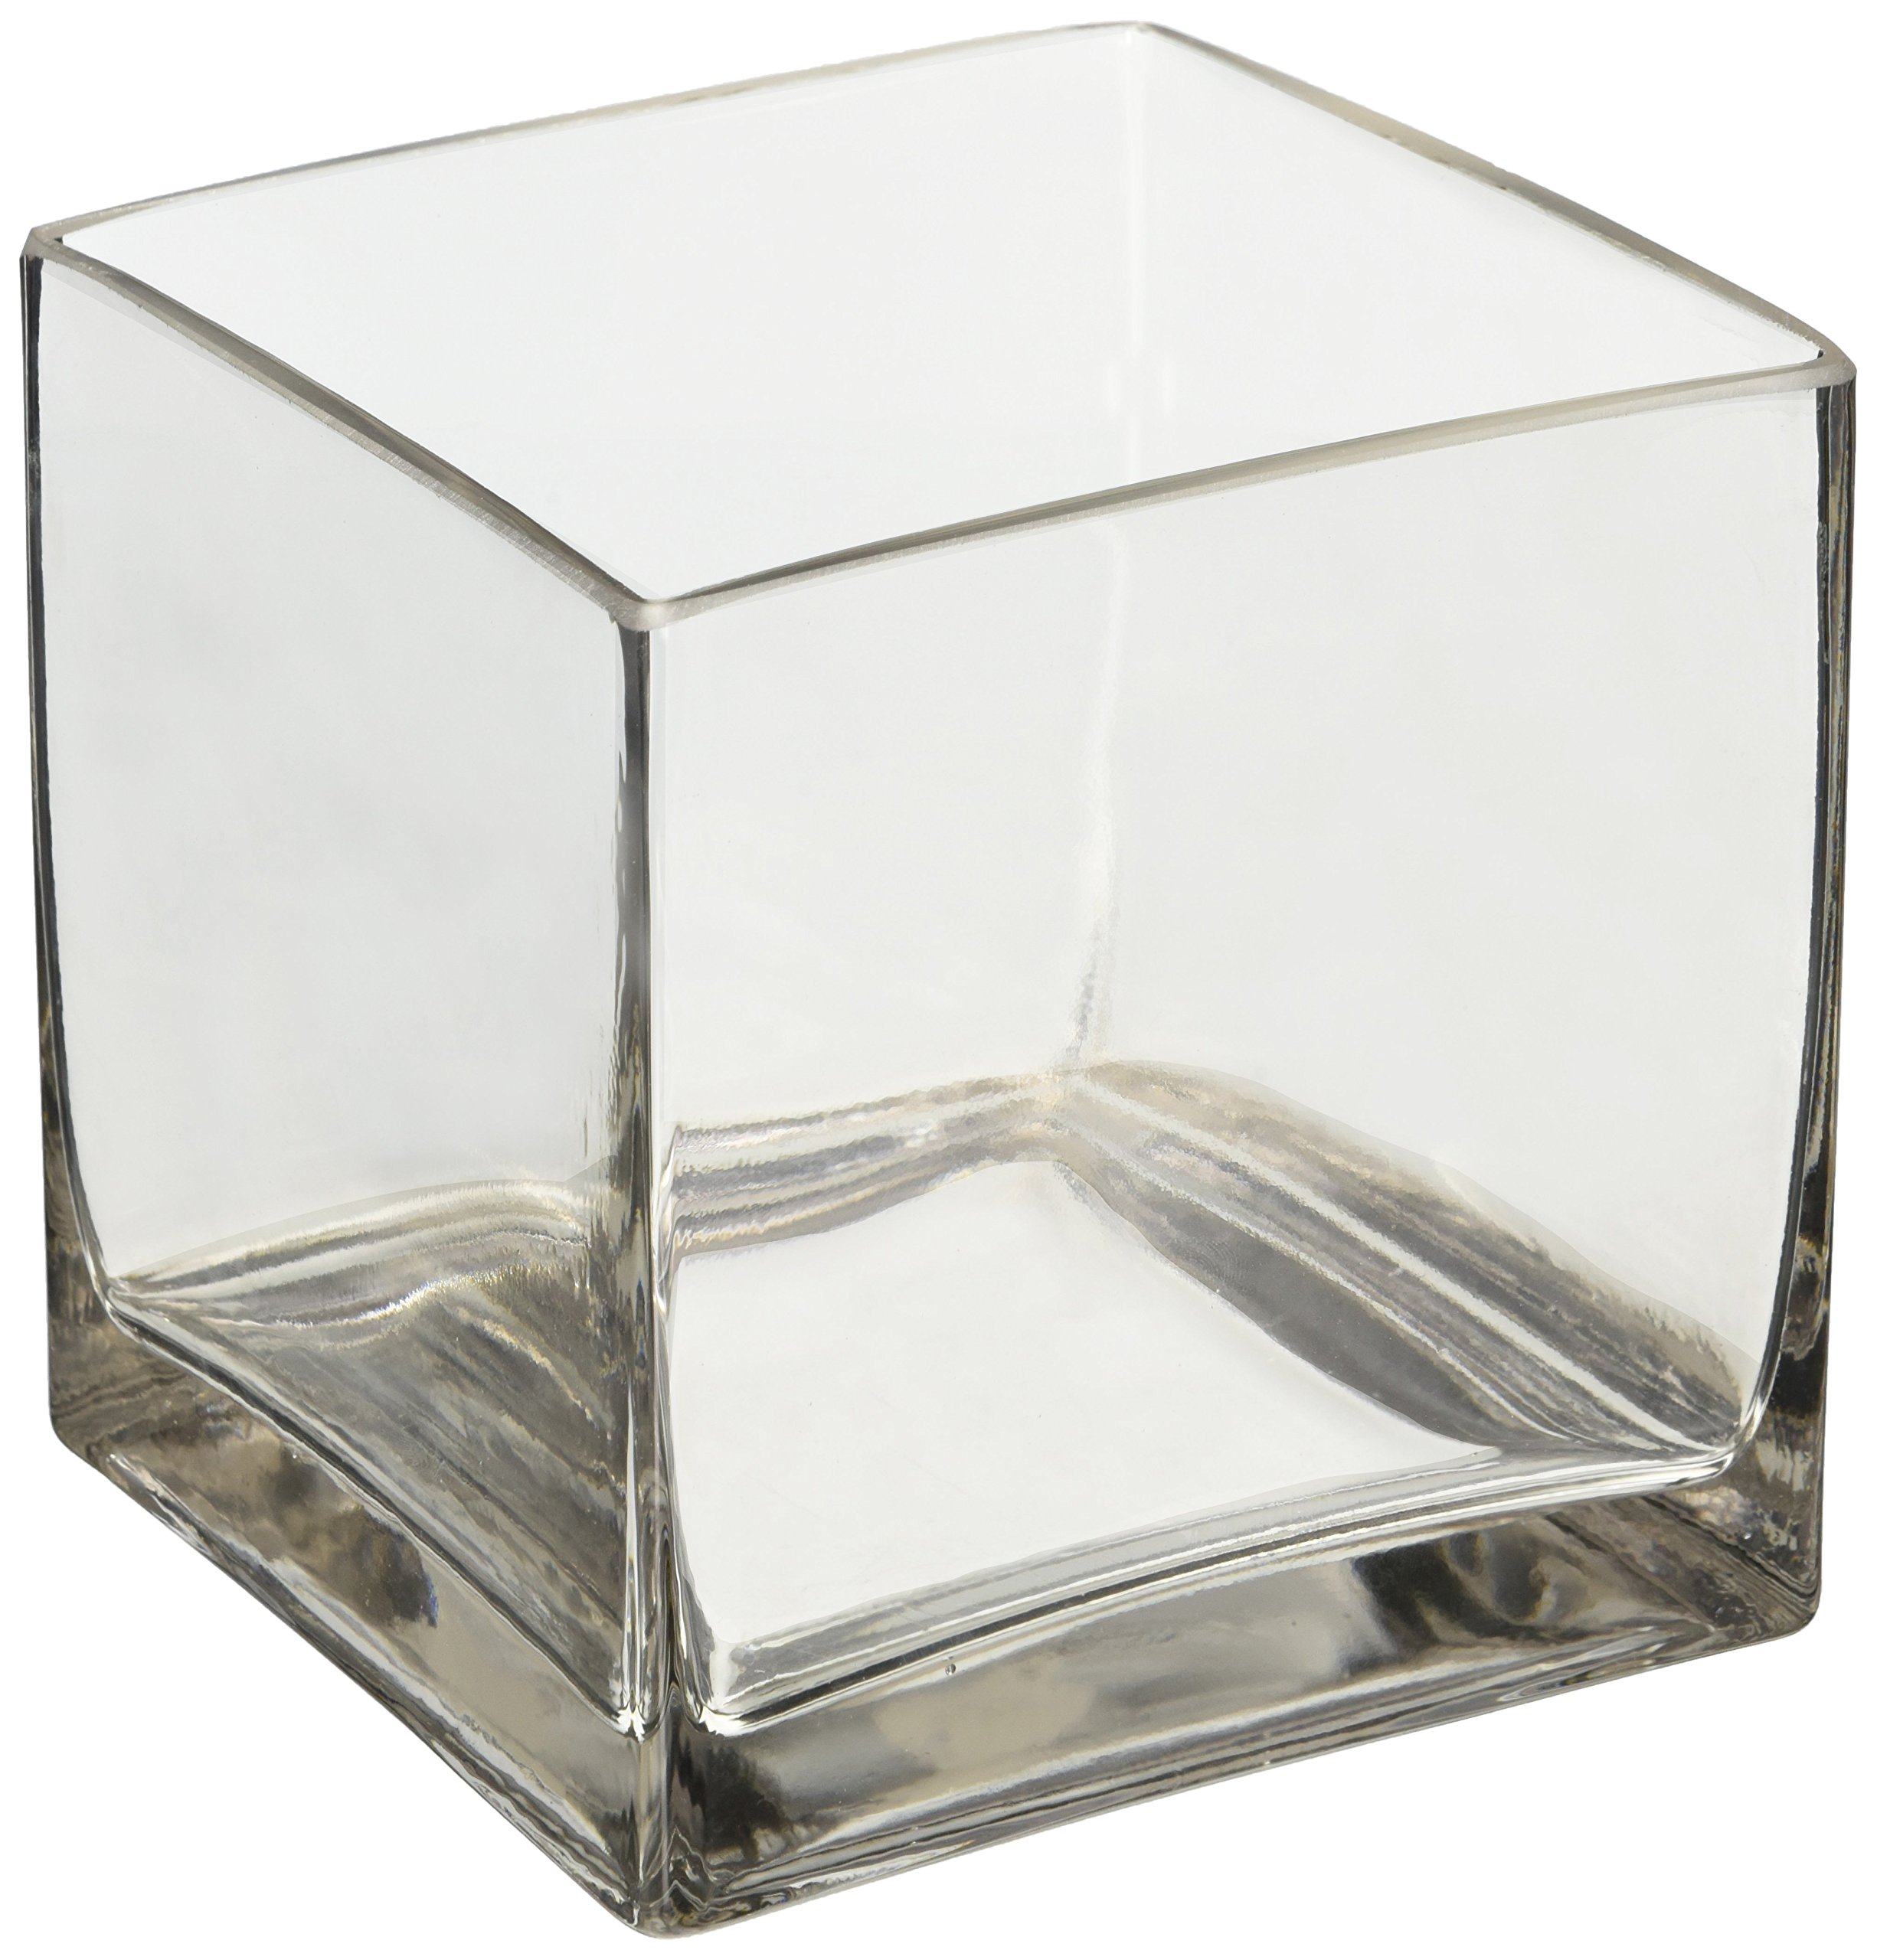 Cheap photo cube vase find photo cube vase deals on line at get quotations 6 square glass vase 6 inch clear cube centerpiece 6x6x6 candleholder reviewsmspy